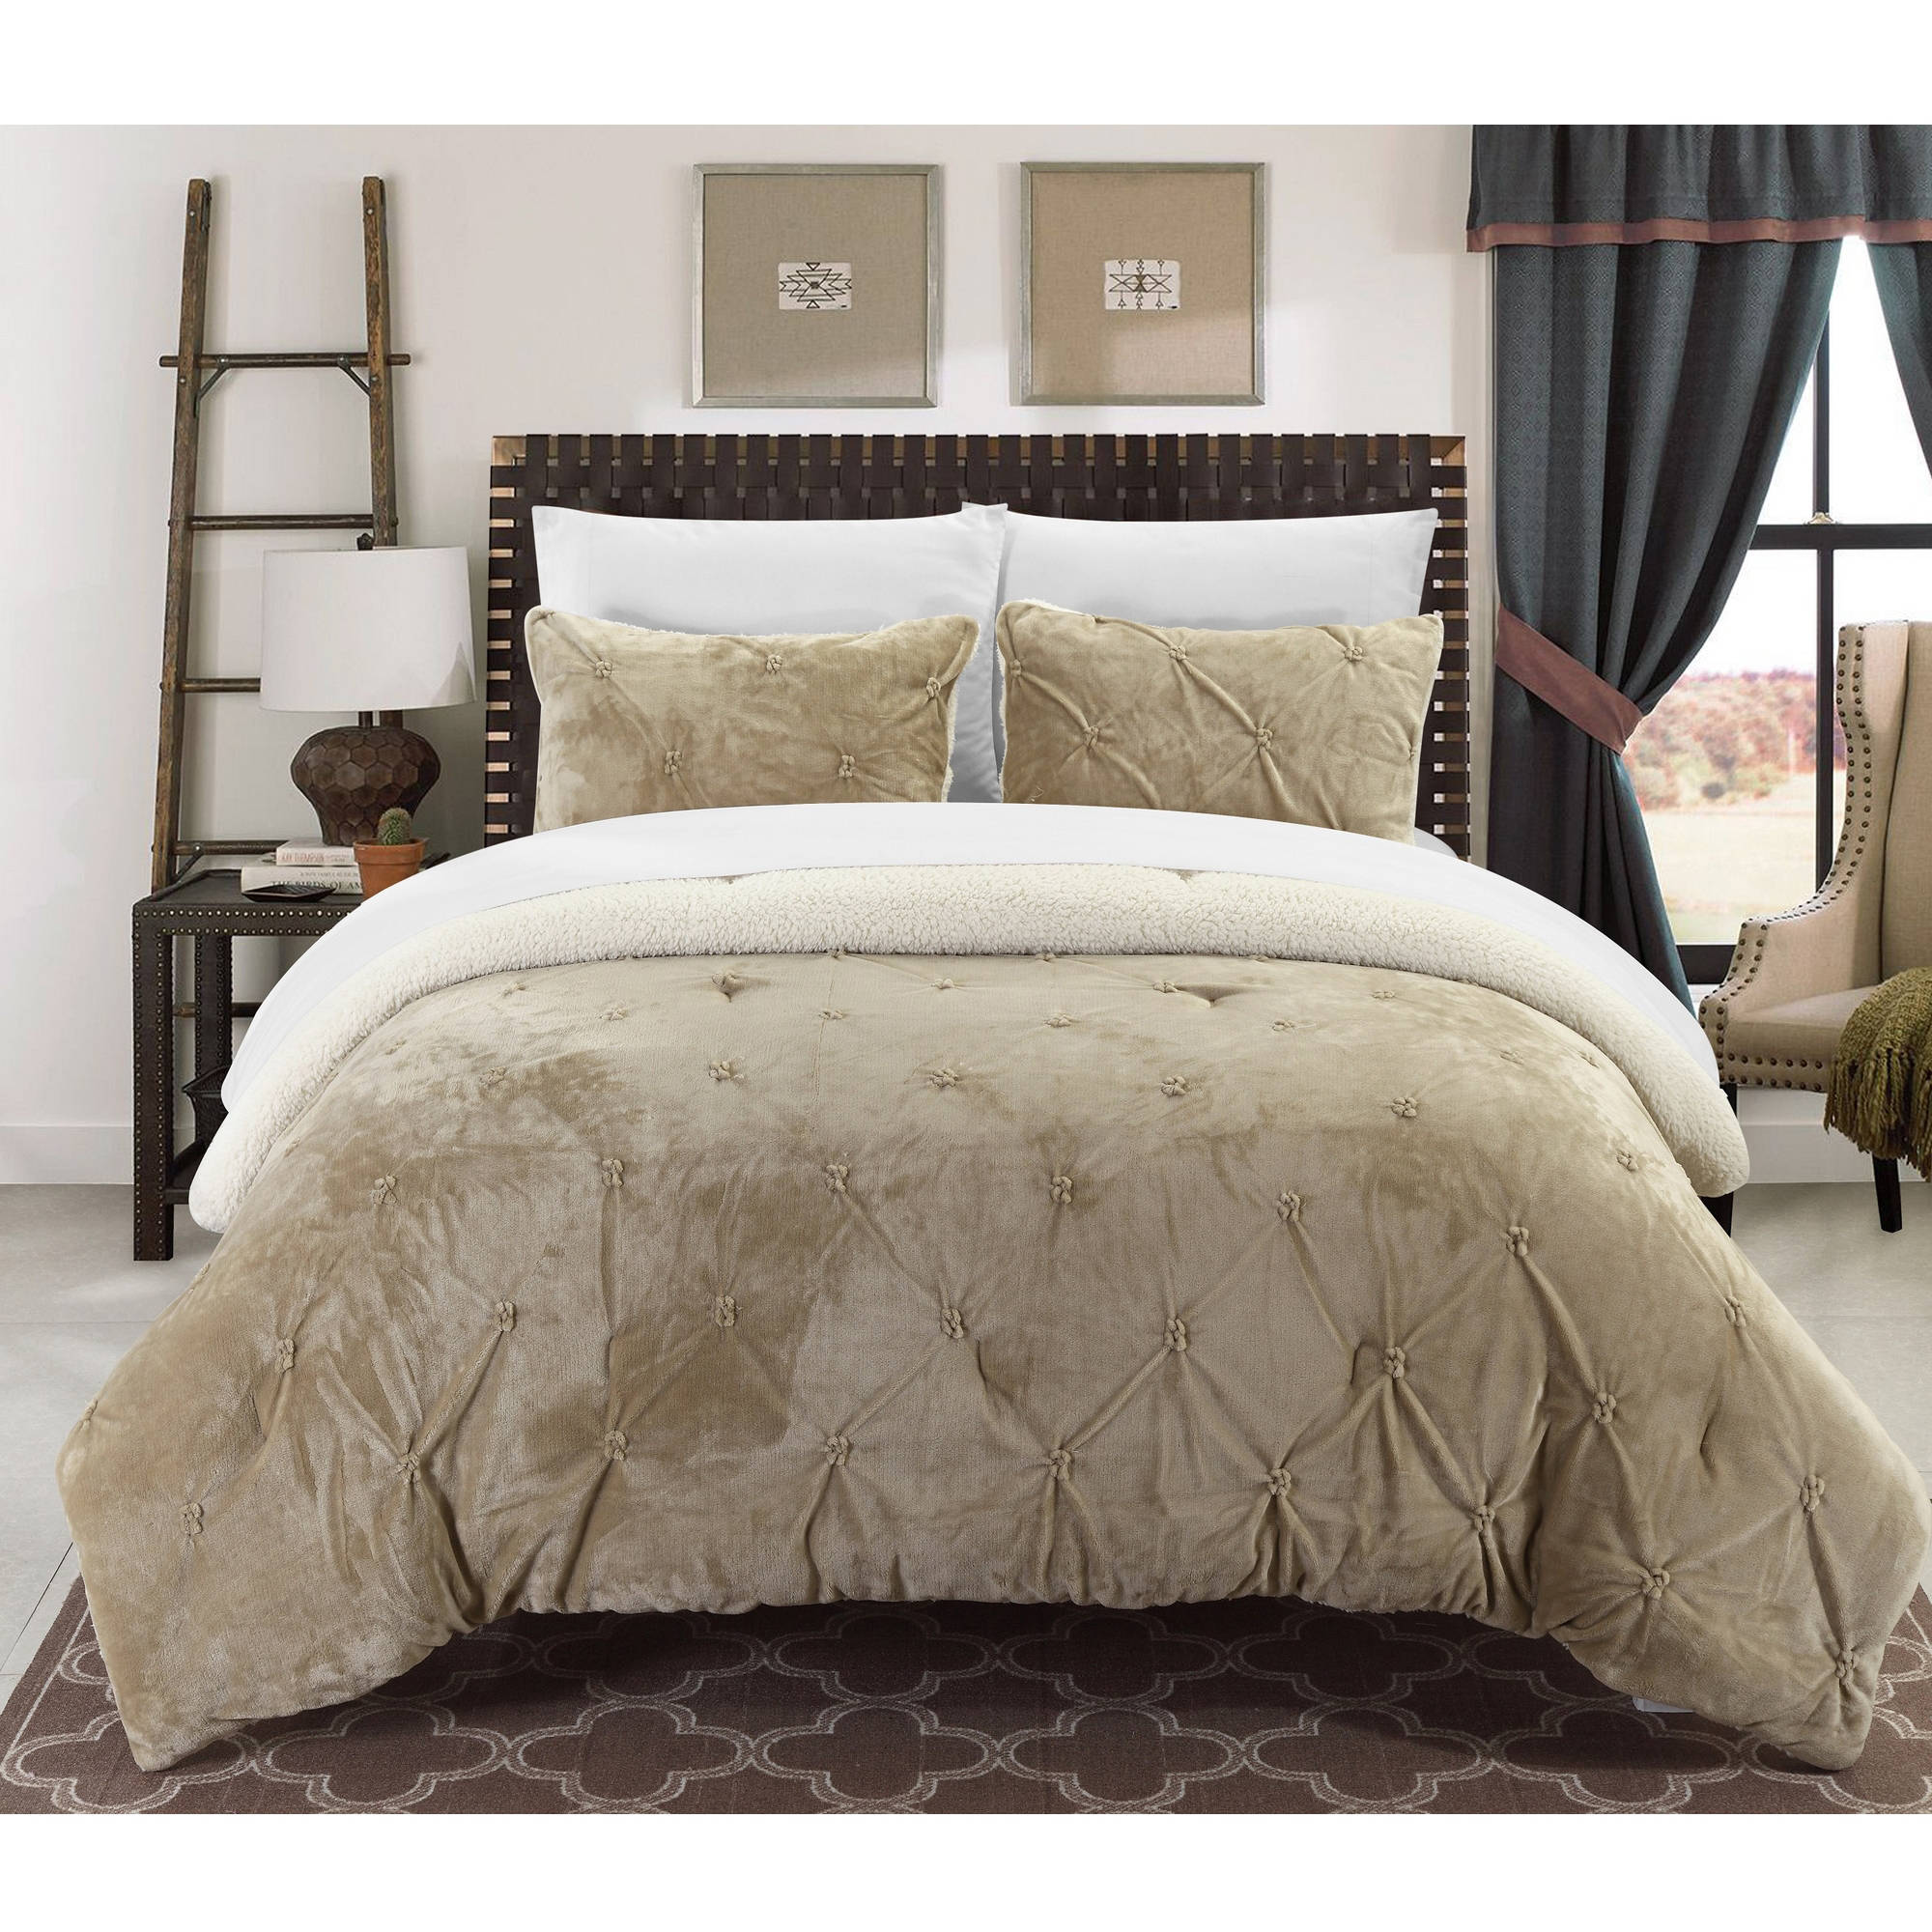 Chic Home Chiara 3-Piece Sherpa Lined Bed-in-a-Bag Comforter Set